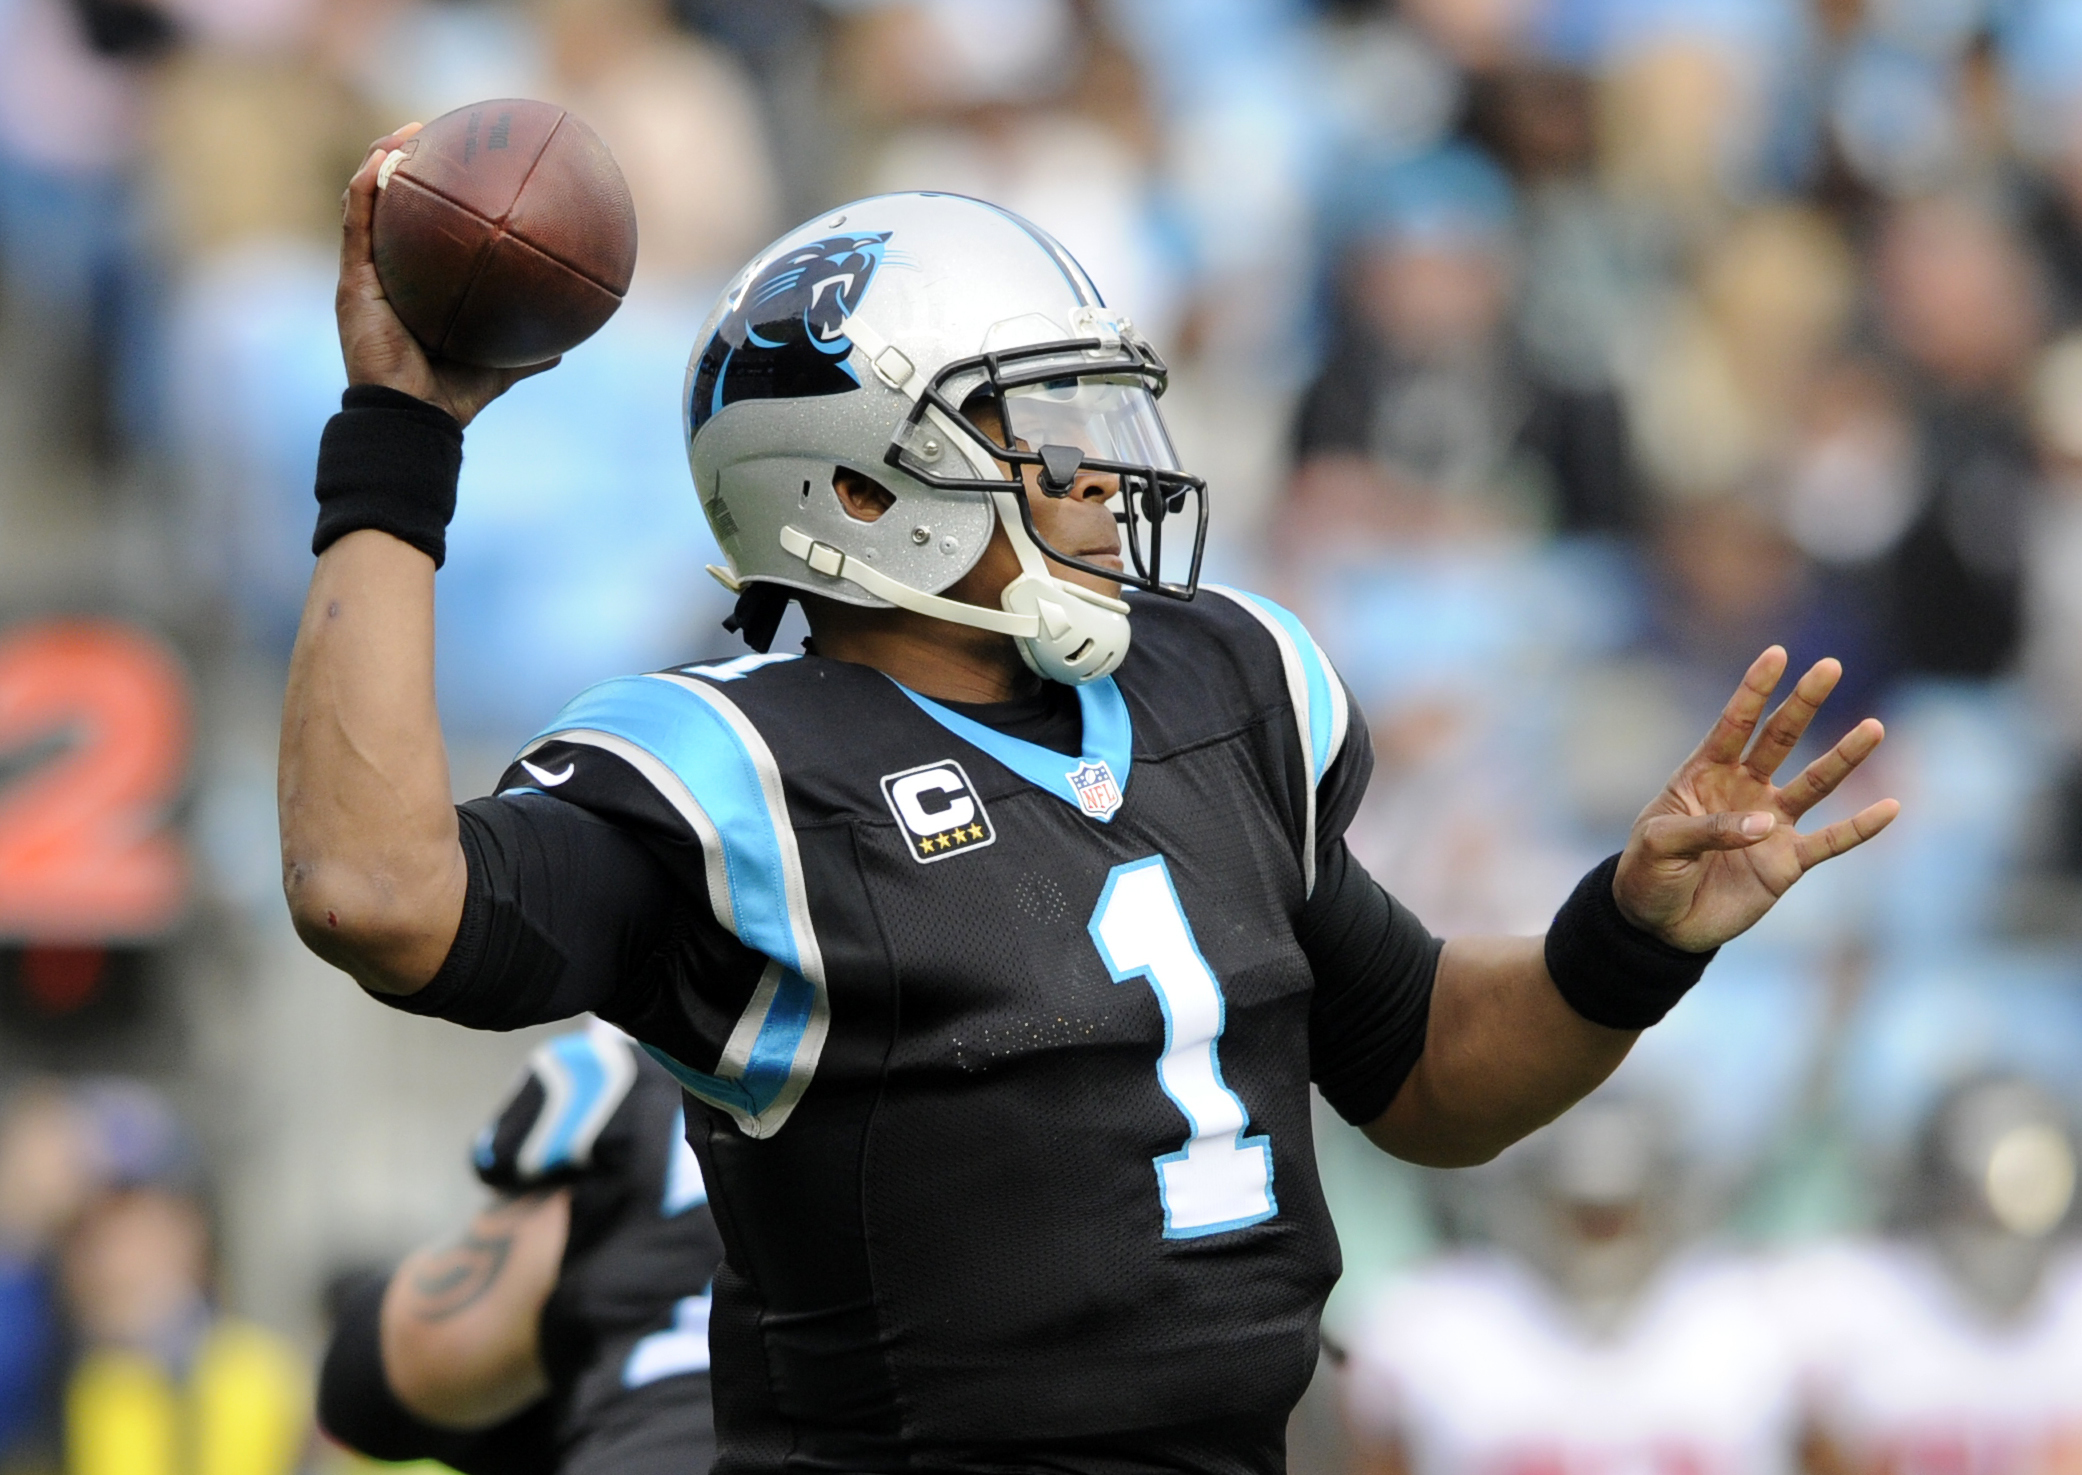 Carolina Panthers' Cam Newton (1) looks to pass against the Atlanta Falcons in the second half of an NFL football game in Charlotte, N.C., Saturday, Dec. 24, 2016. (AP Photo/Mike McCarn)